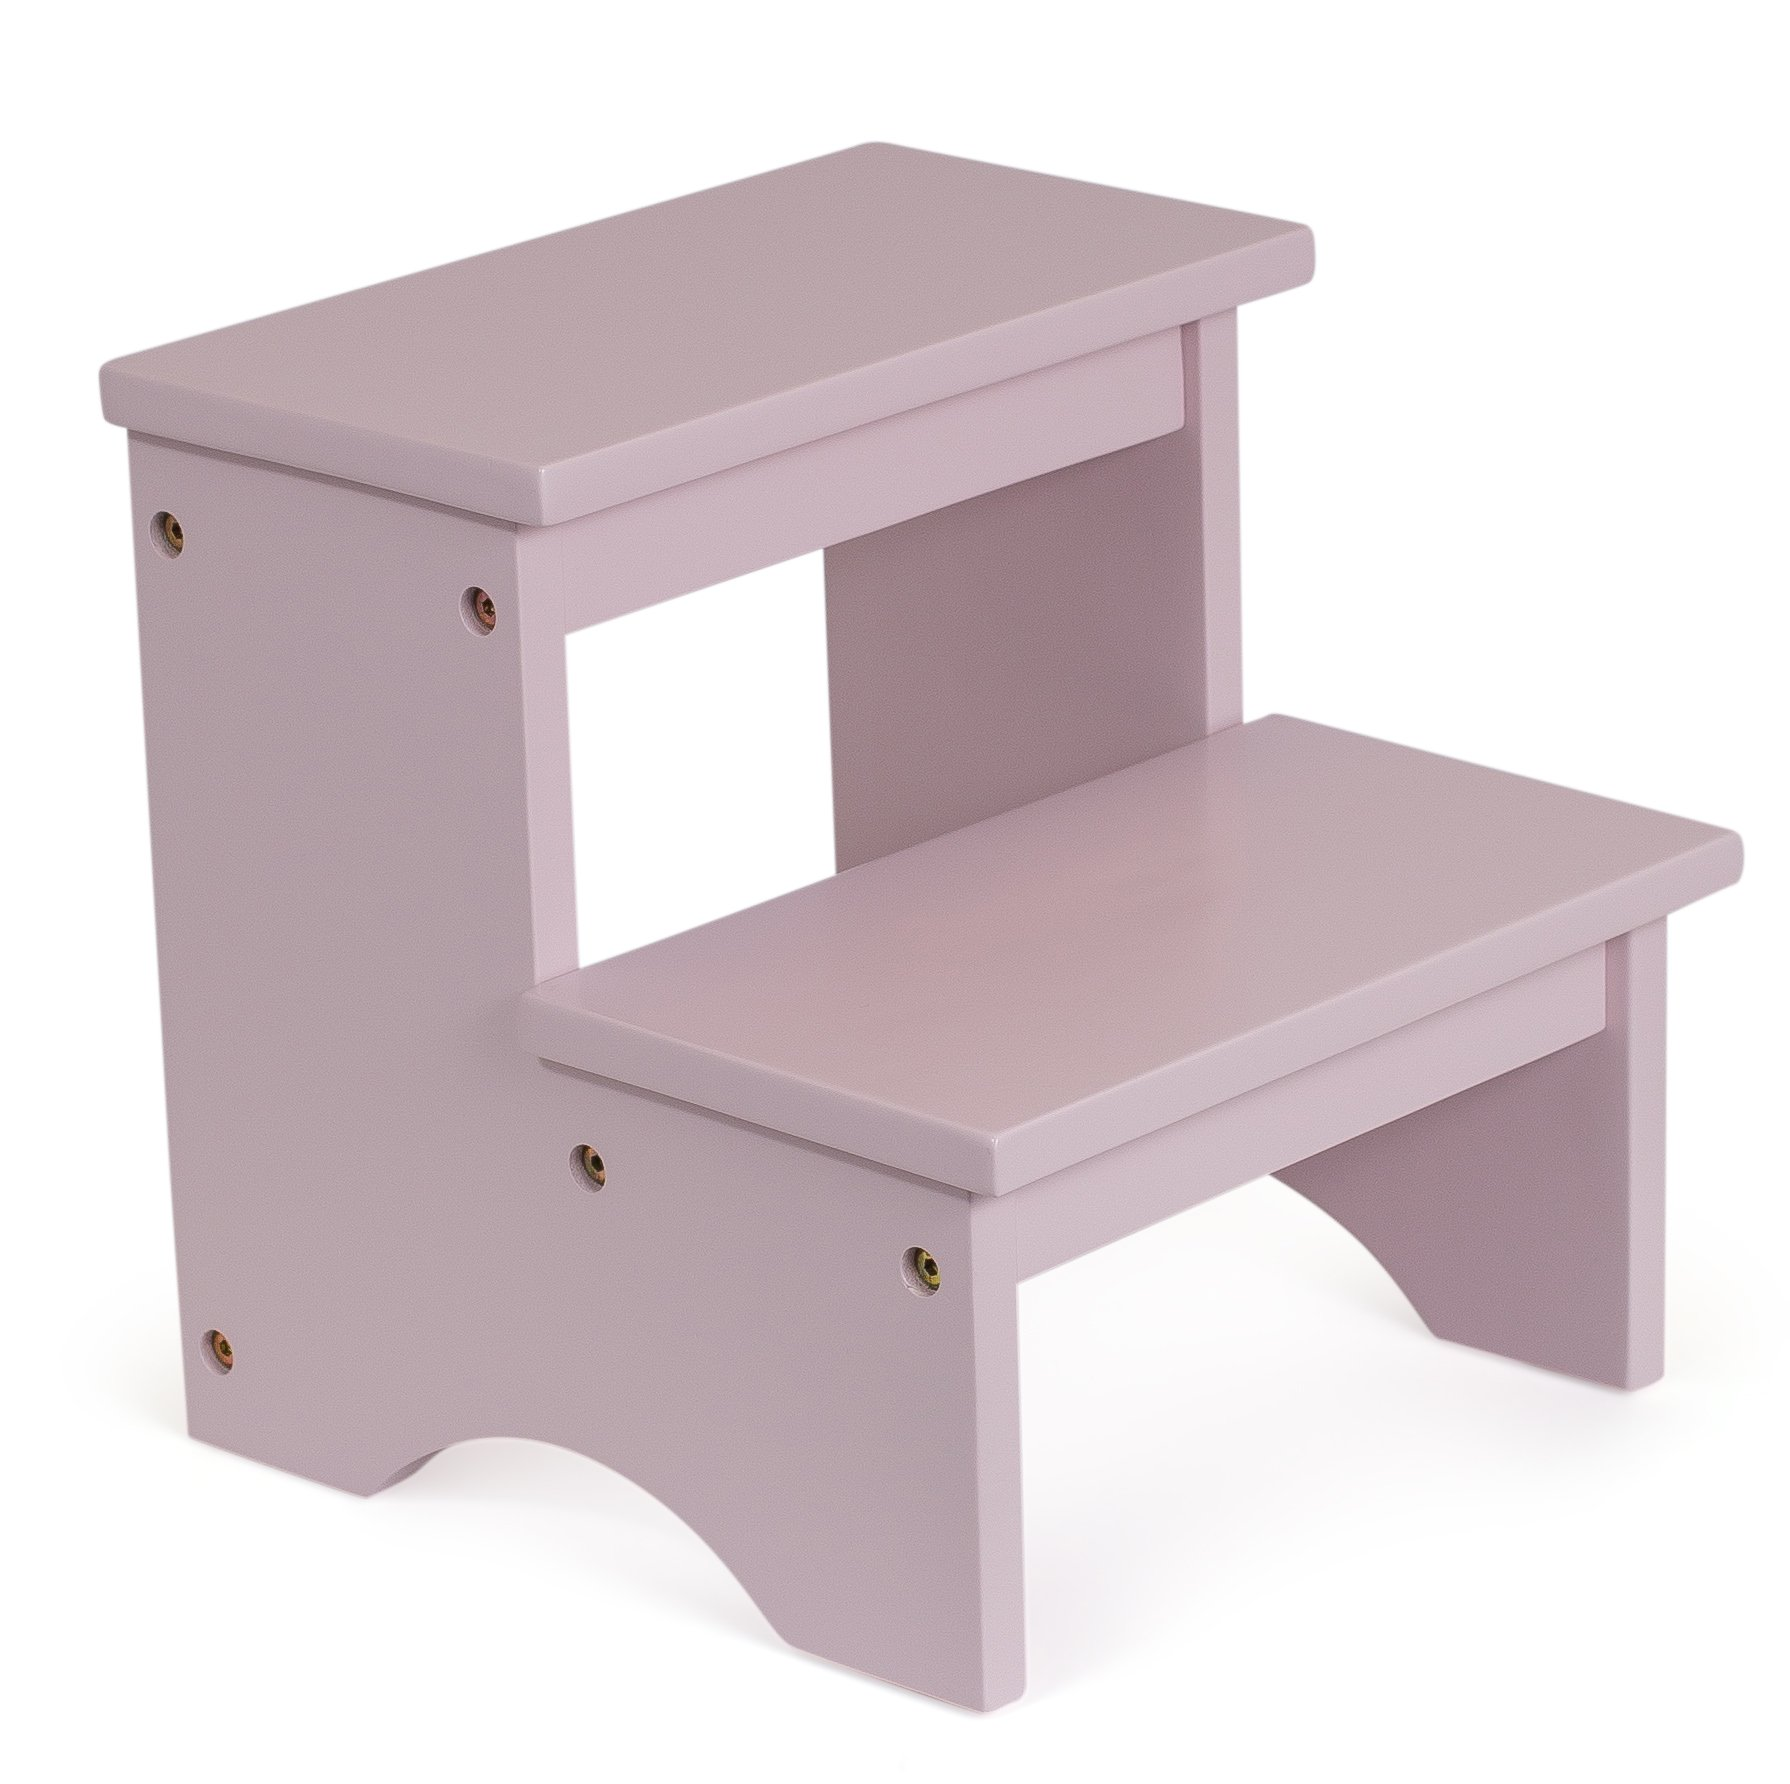 BirdRock Home Childrens step stool (pink) by BirdRock Home